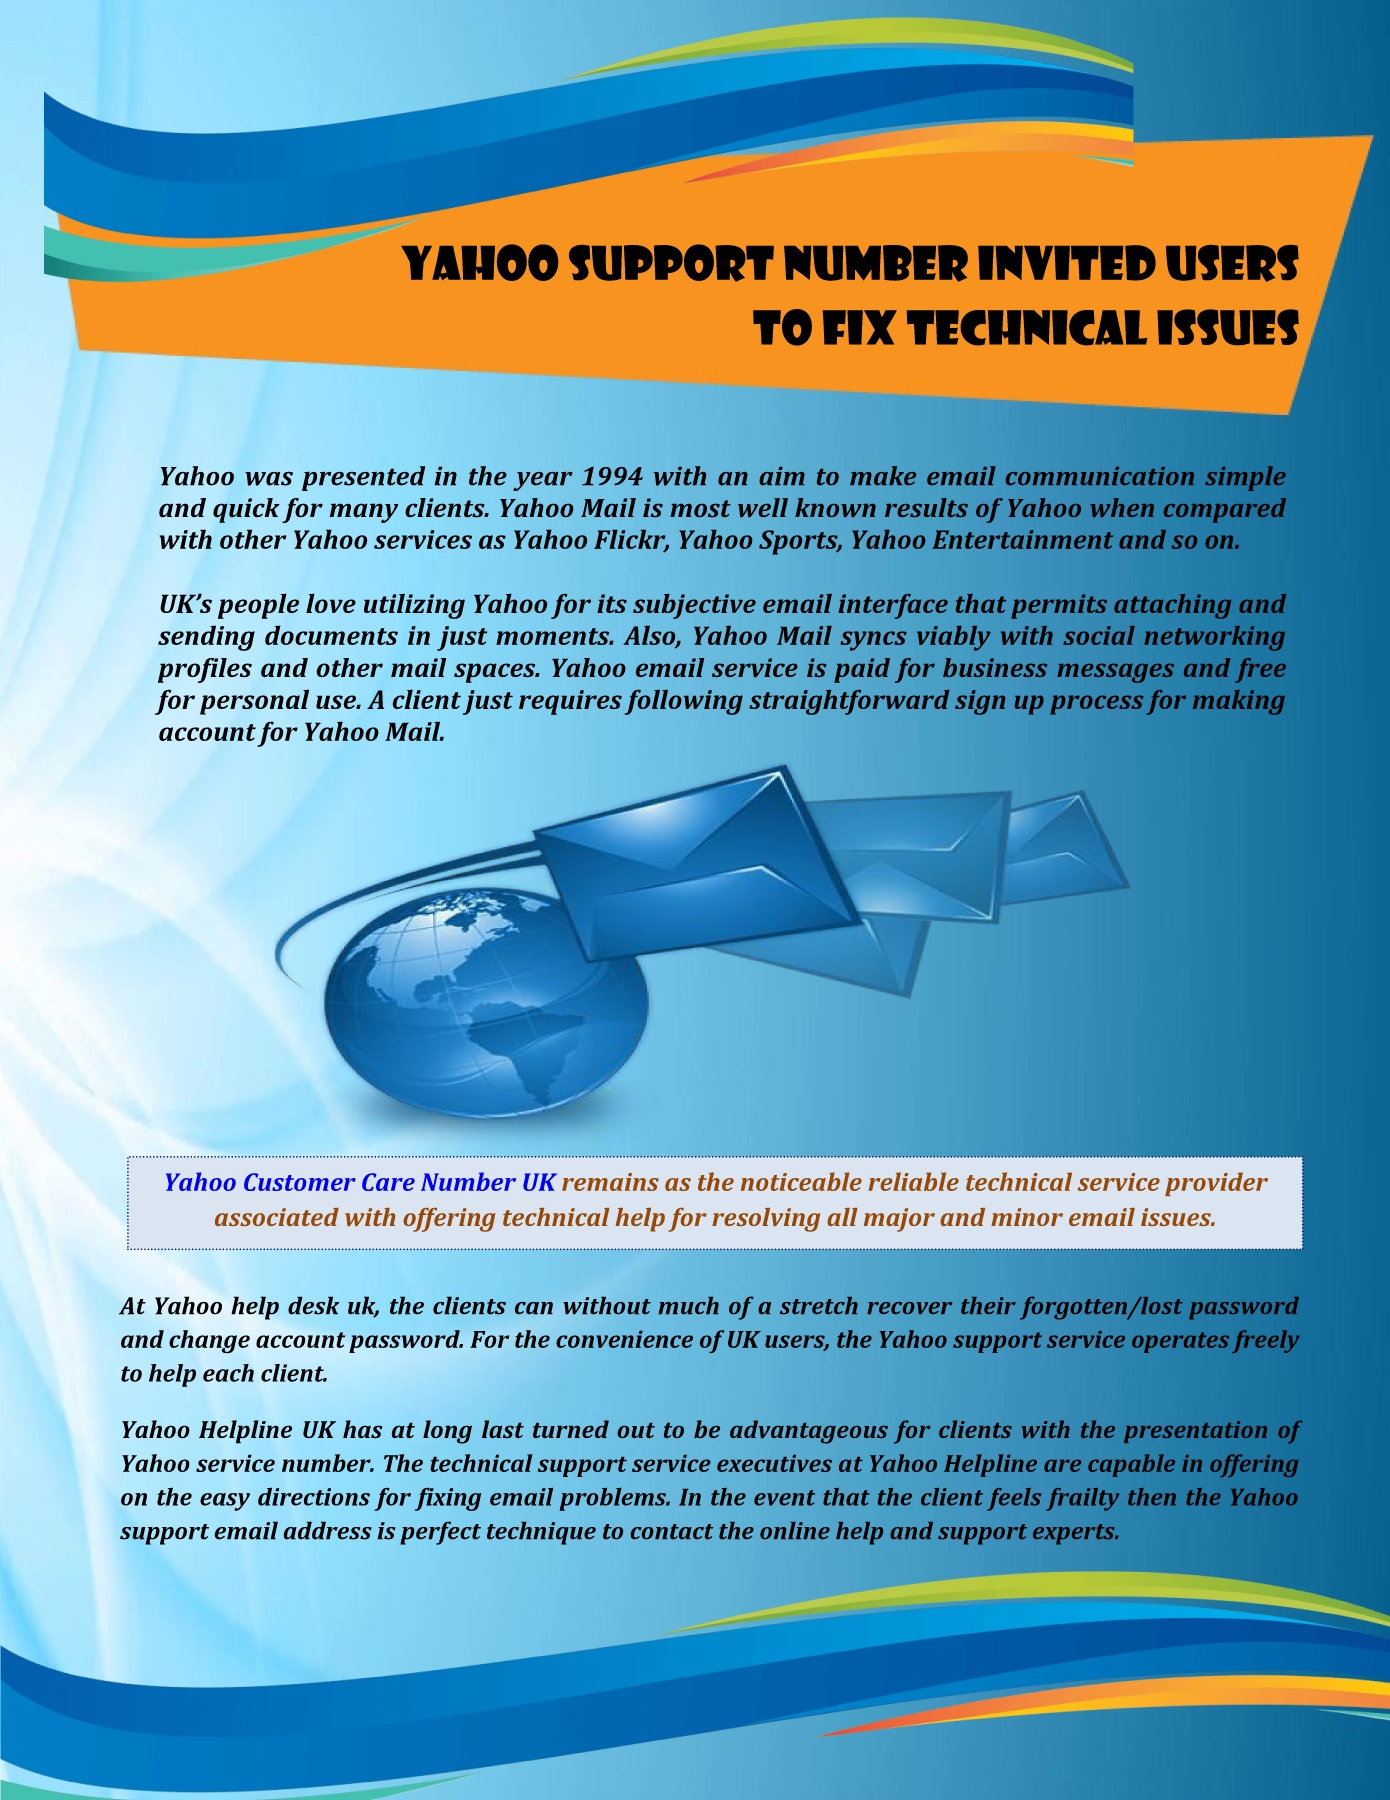 Yahoo Support Number to Fix Technical Issues Pages 1 - 2